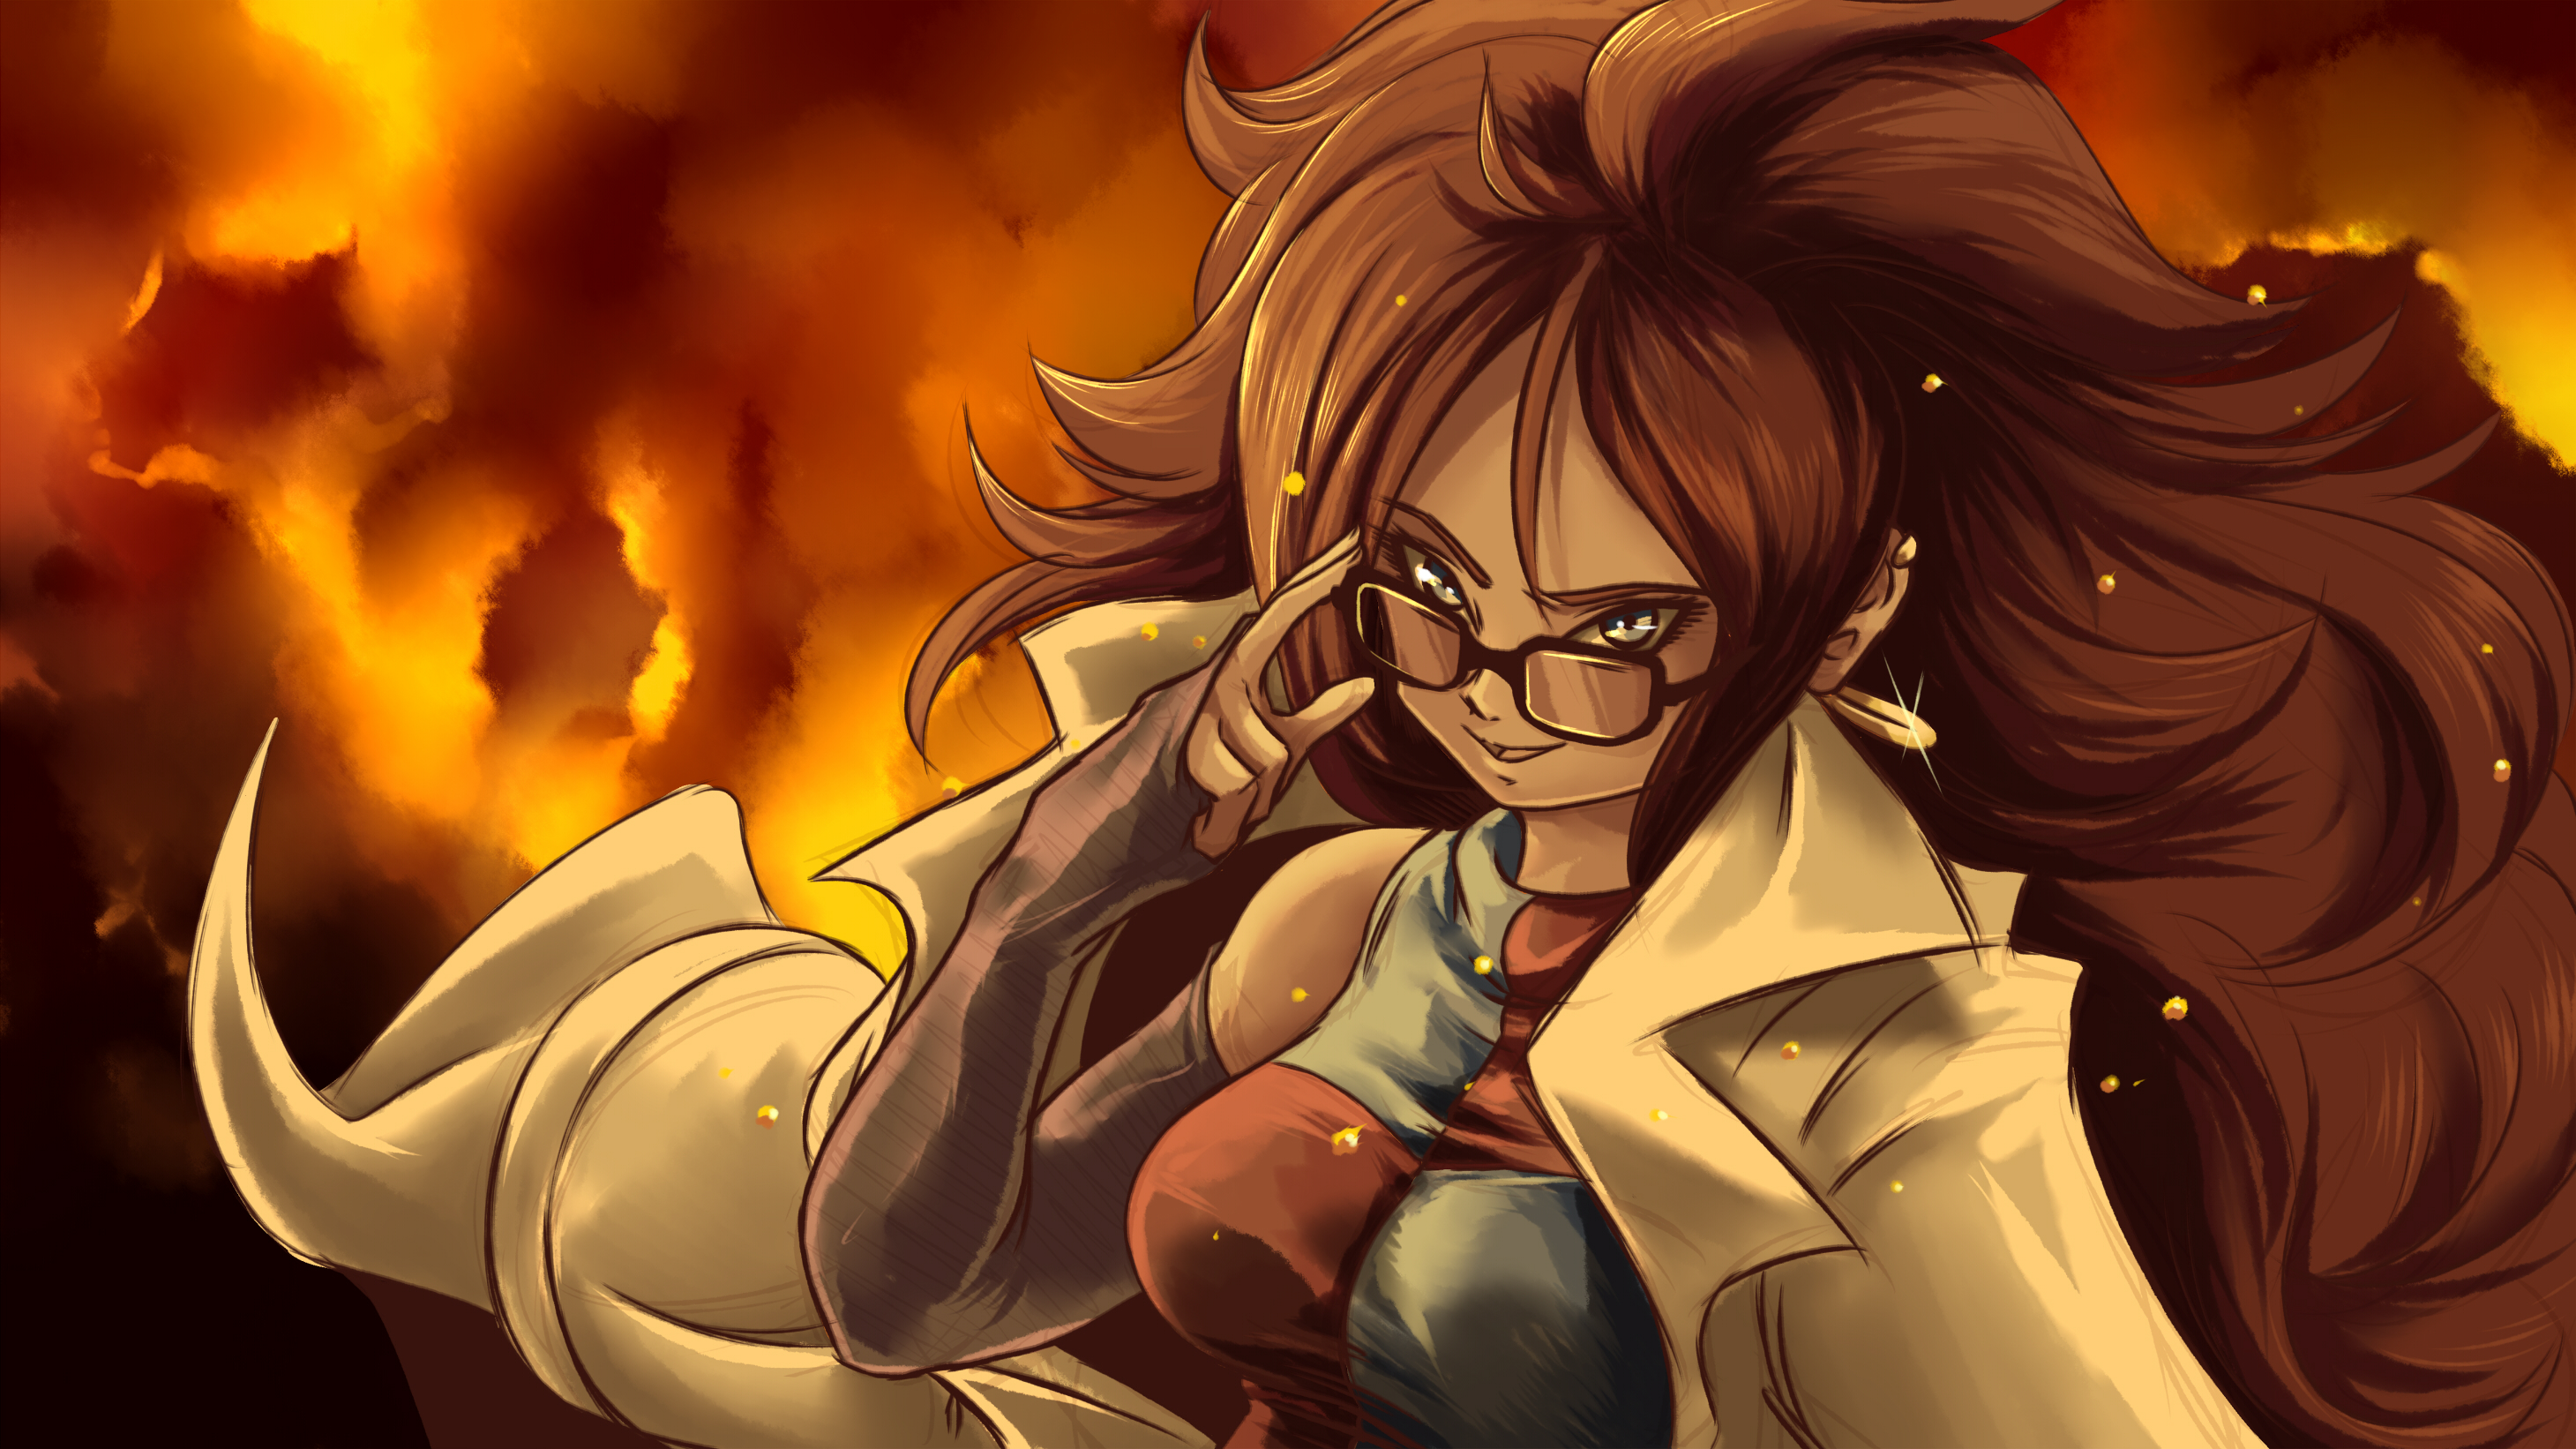 Android 21 dragon ball fighterz hd games 4k wallpapers - Free dragonfly wallpaper for android ...